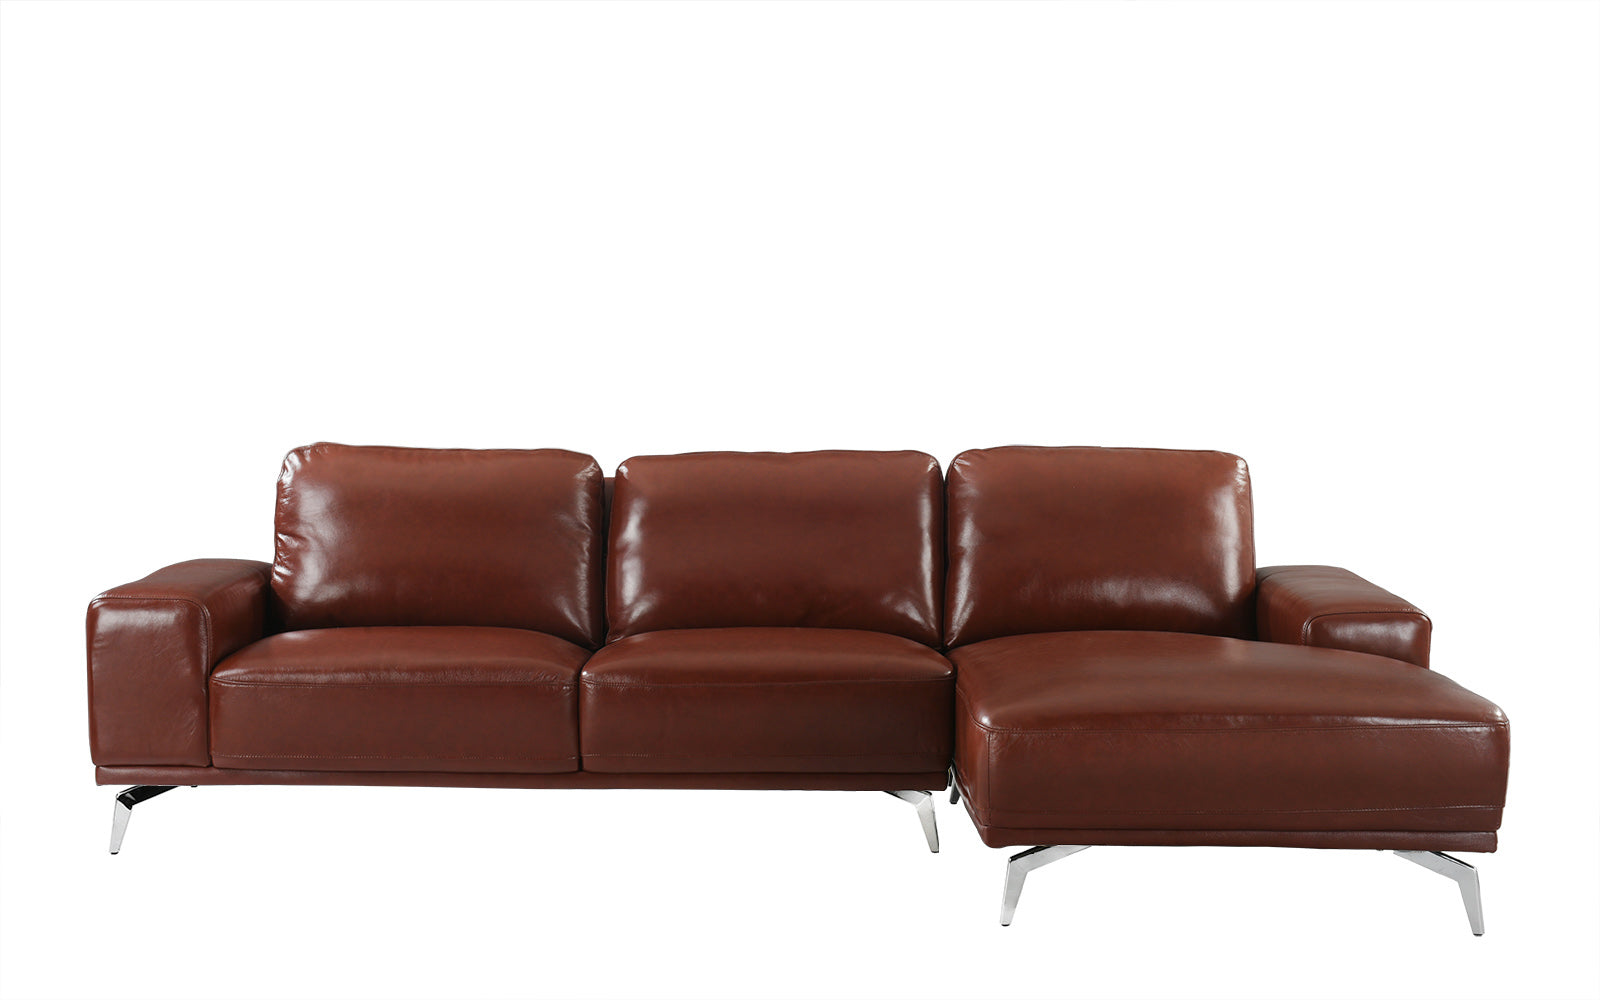 L Shape Sectional Sofa Right Chaise Image